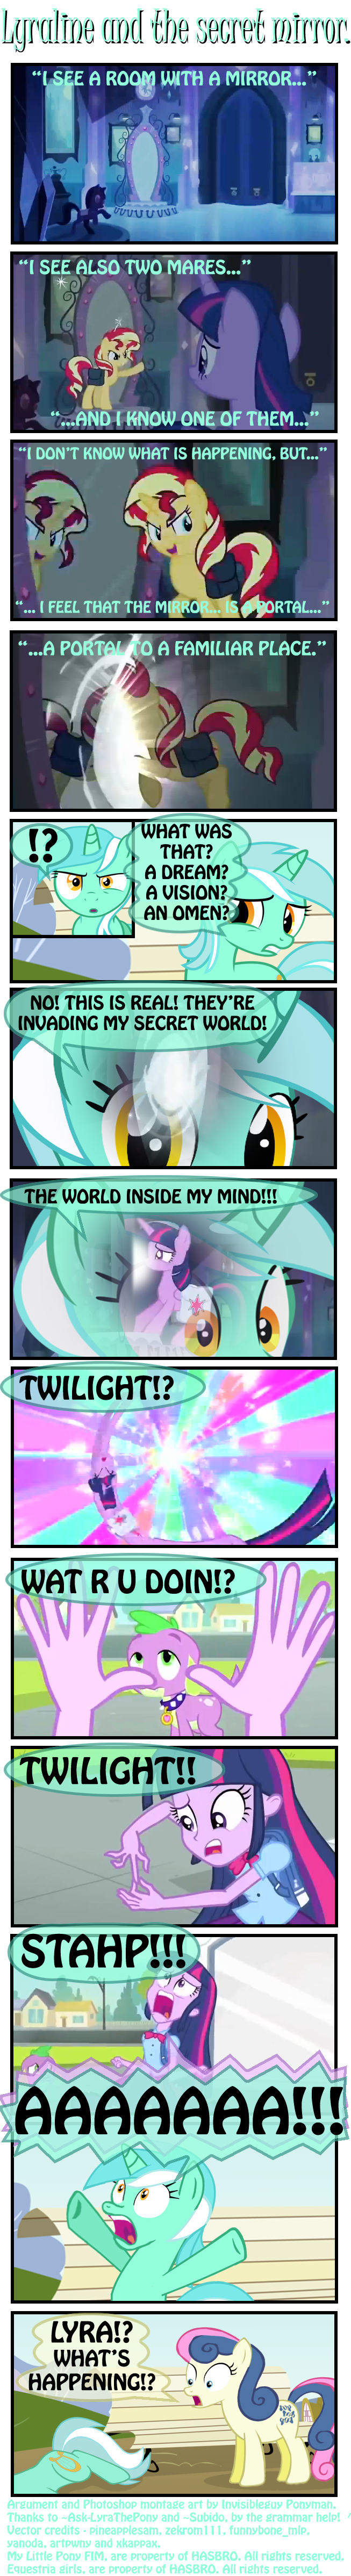 Lyraline and the secret mirror. by INVISIBLEGUY-PONYMAN